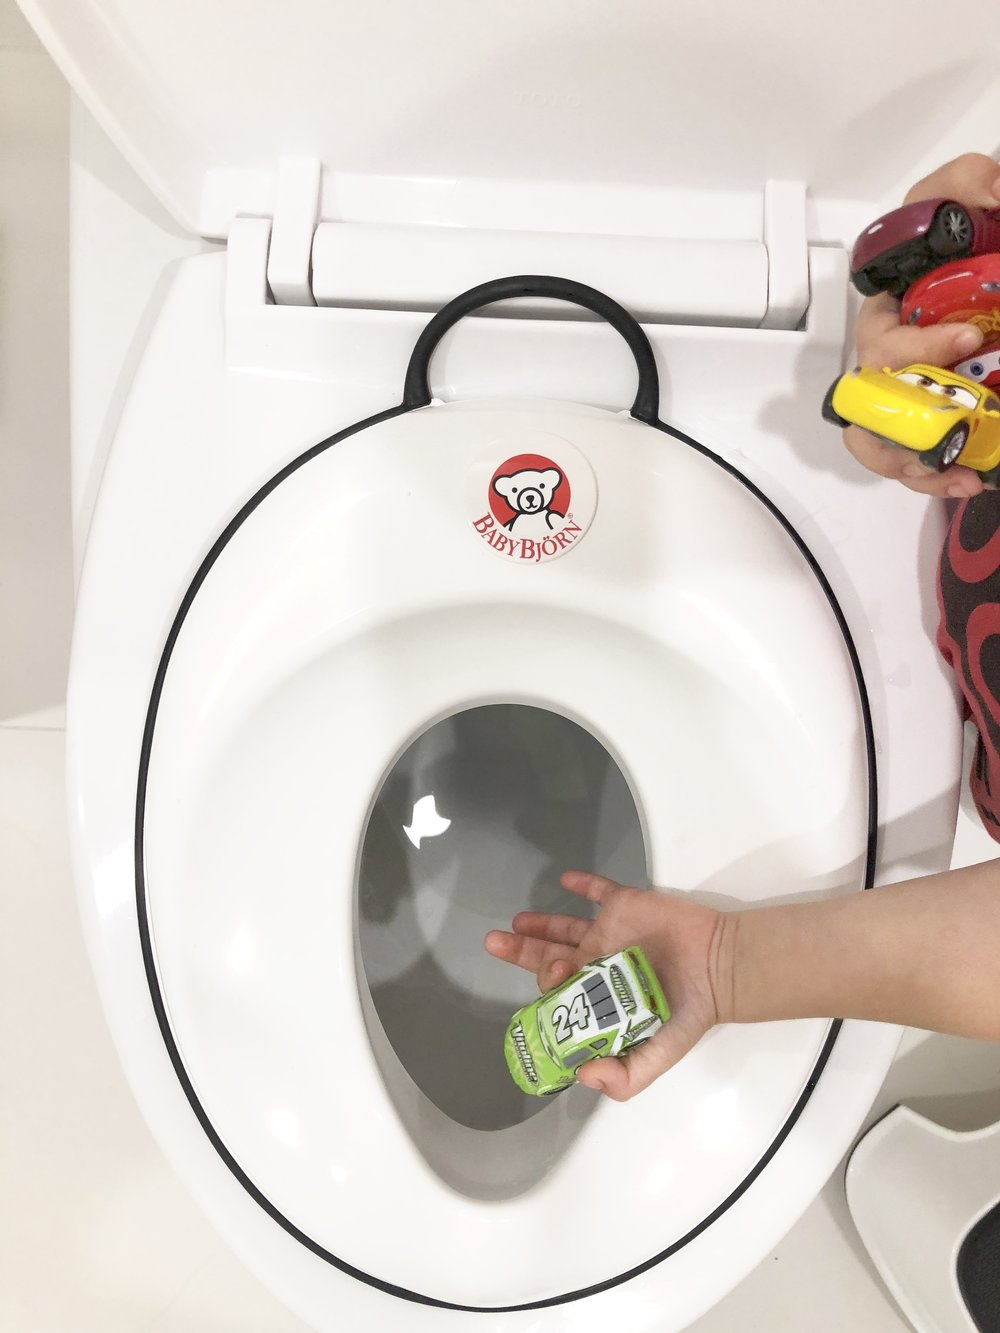 potty-training-fun.jpg